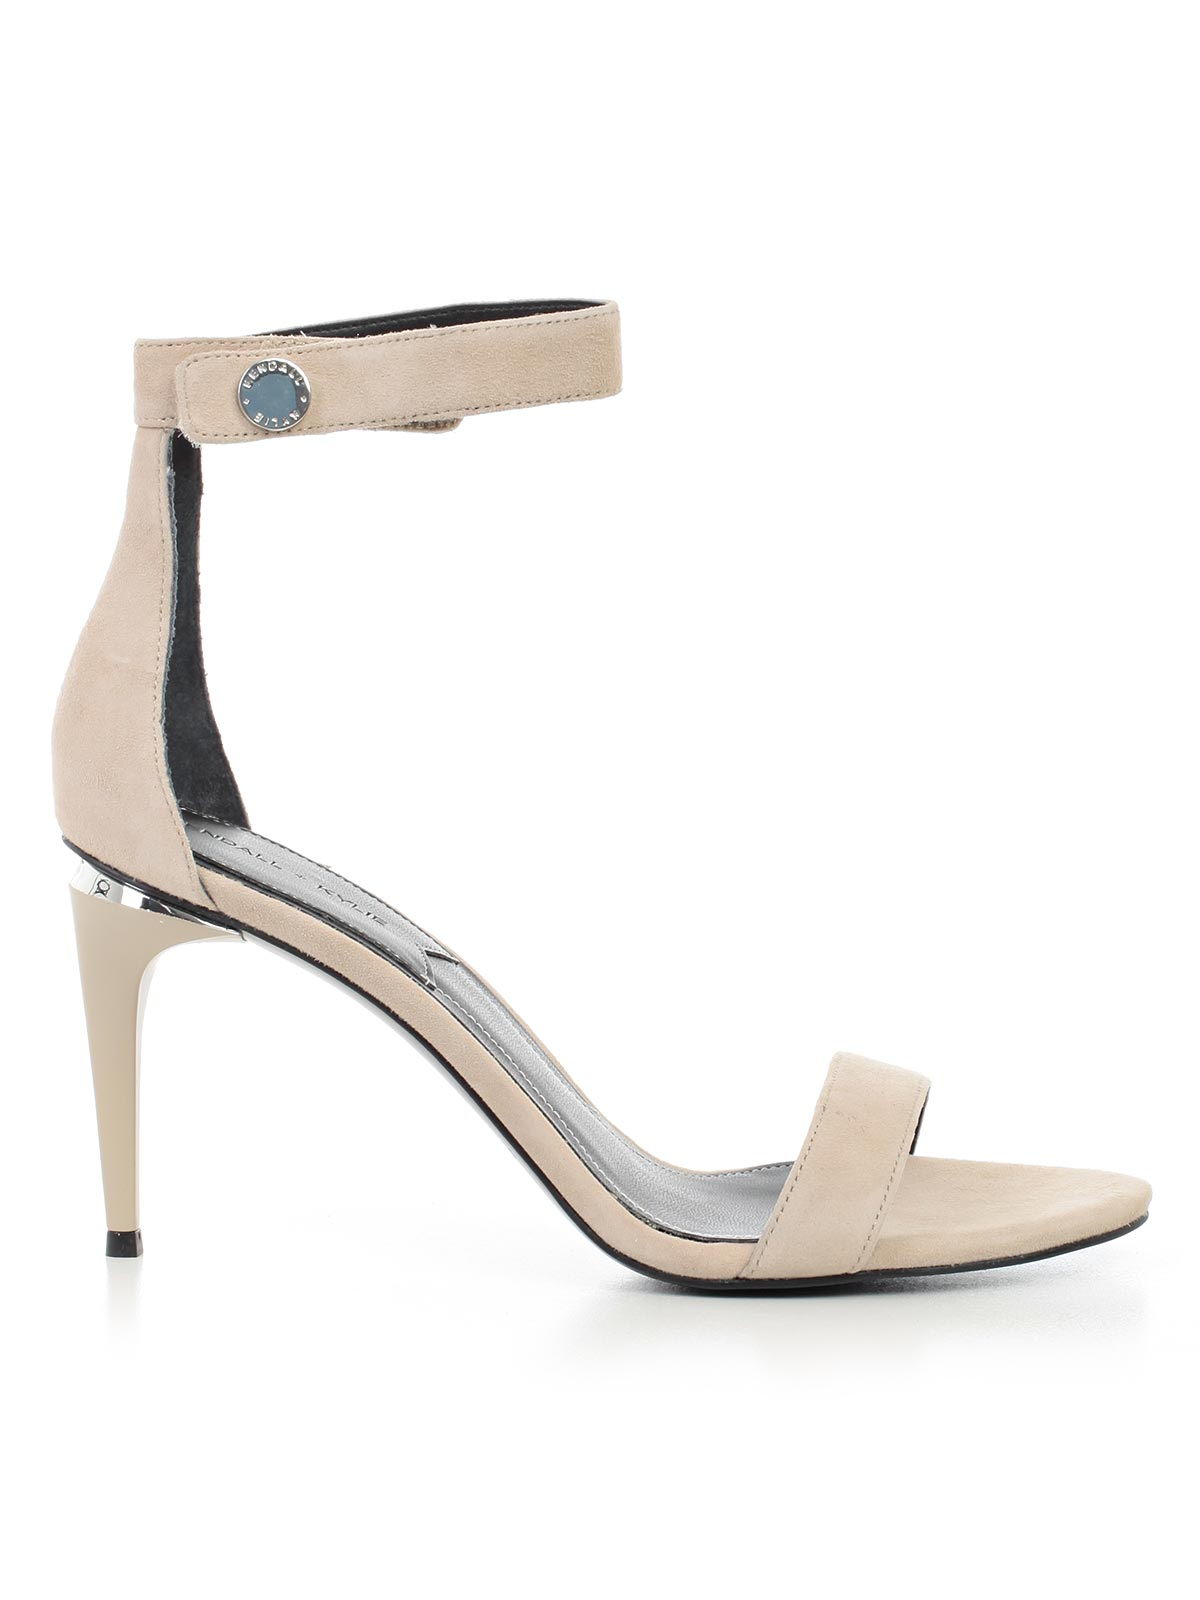 KENDALL + KYLIE CLASSIC HEELED SUEDE SANDALS